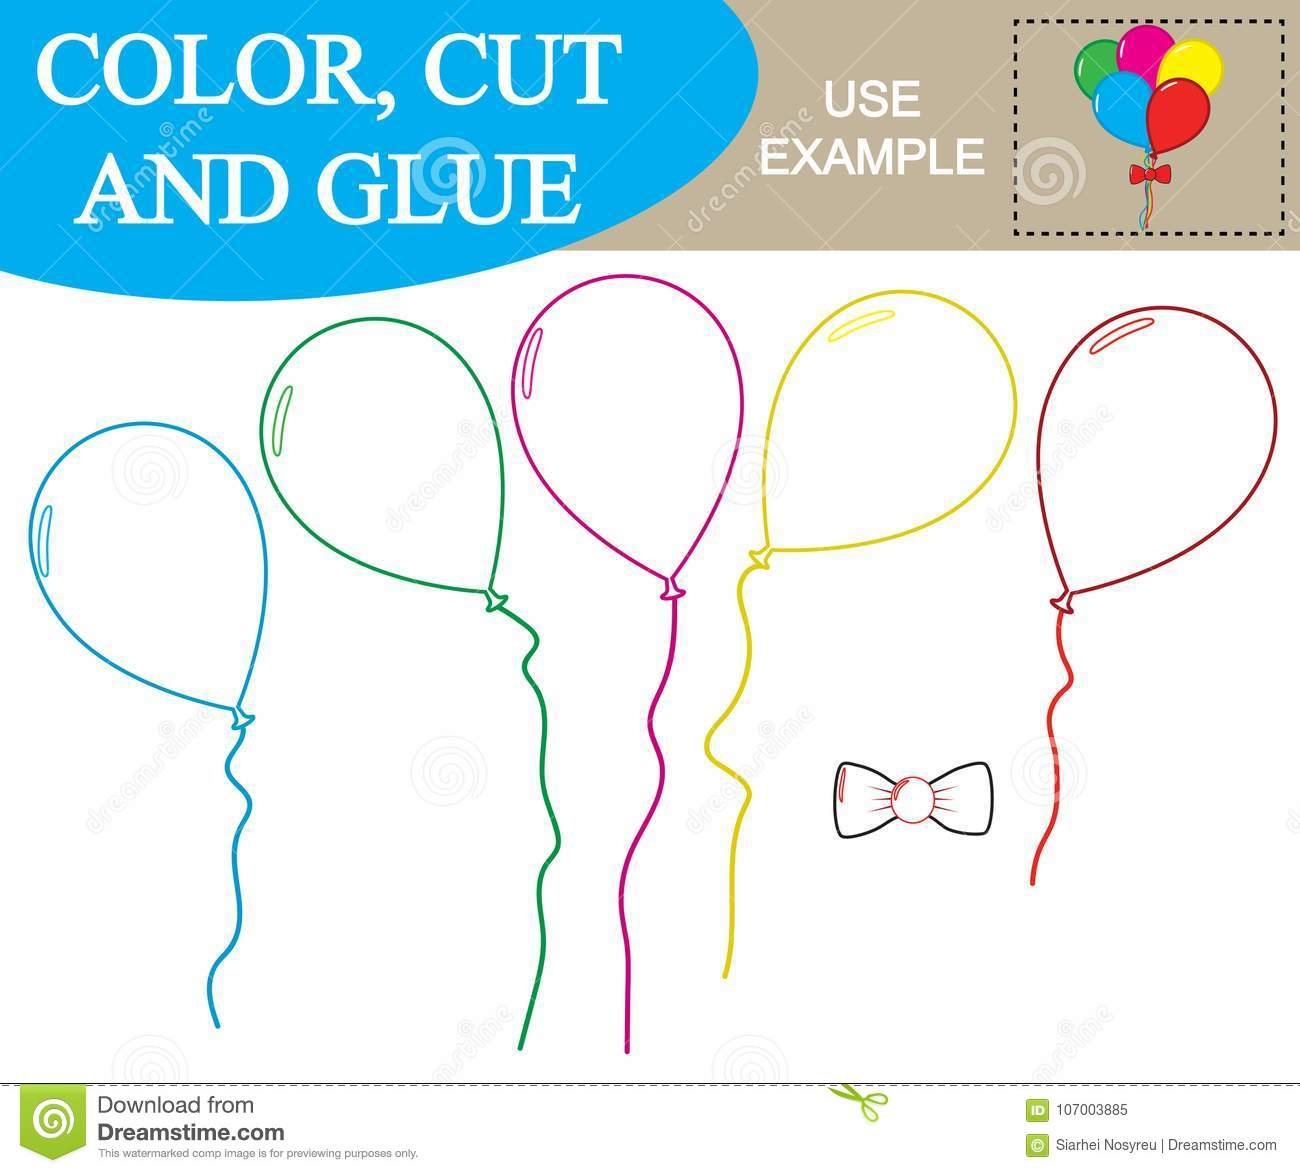 Create The Image Of Balloons Worksheet Color Cut And